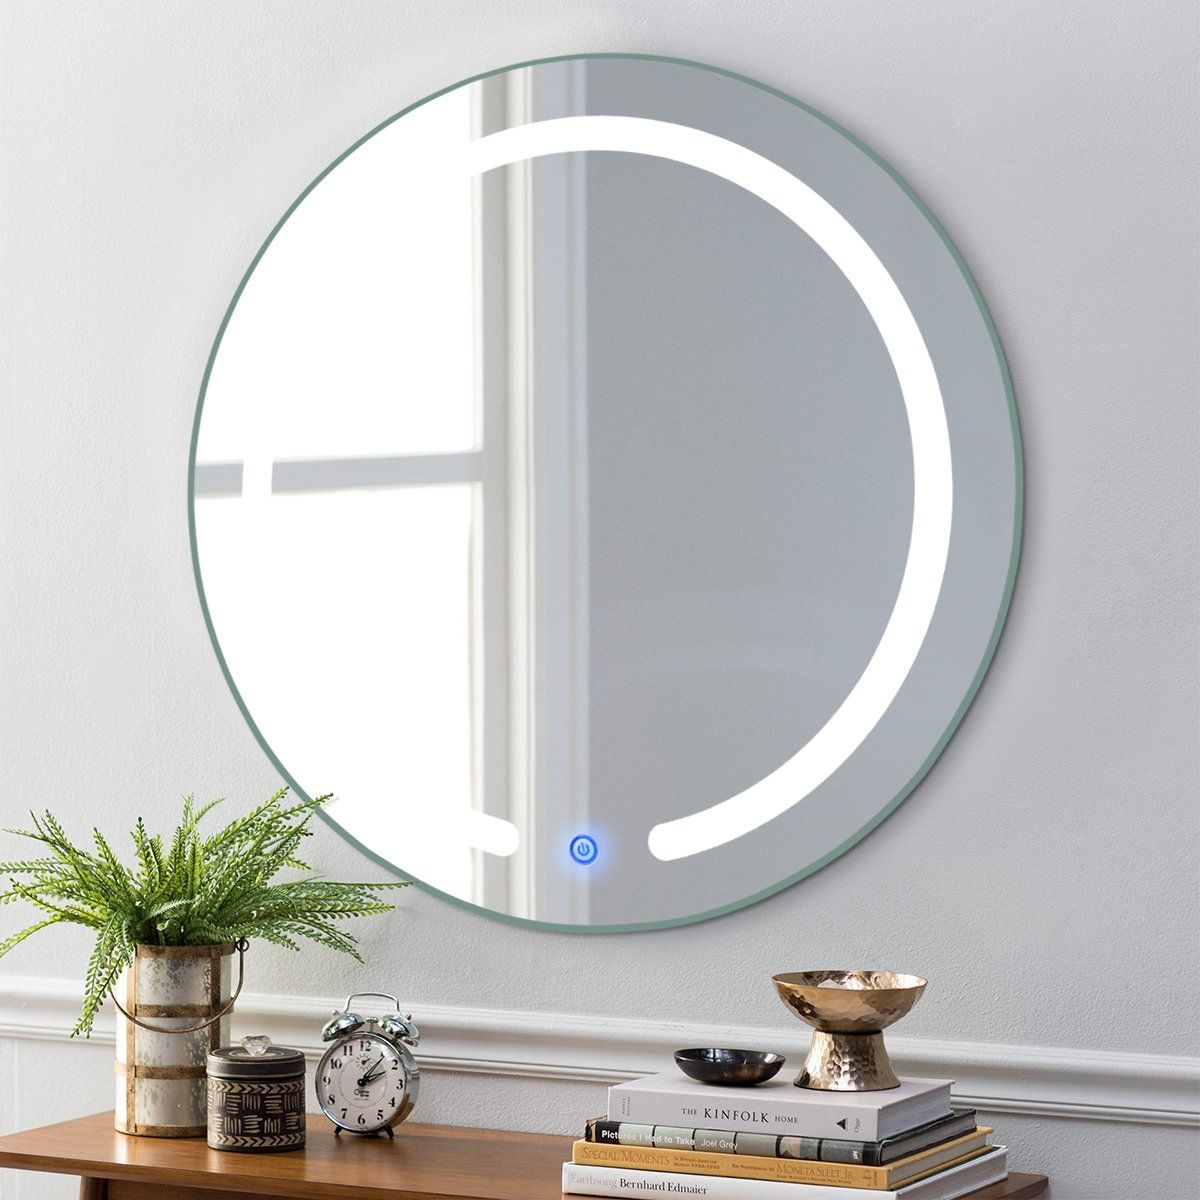 Tangkula 20 Led Mirror Round Wall Mount Lighted Mirror Bathroom Bedroom Home Furniture Illuminated Vanity Make Up Lamp Wall Mounted Mirror With Touch Button 2 Wall Mounted Mirror Led Mirror Mirror